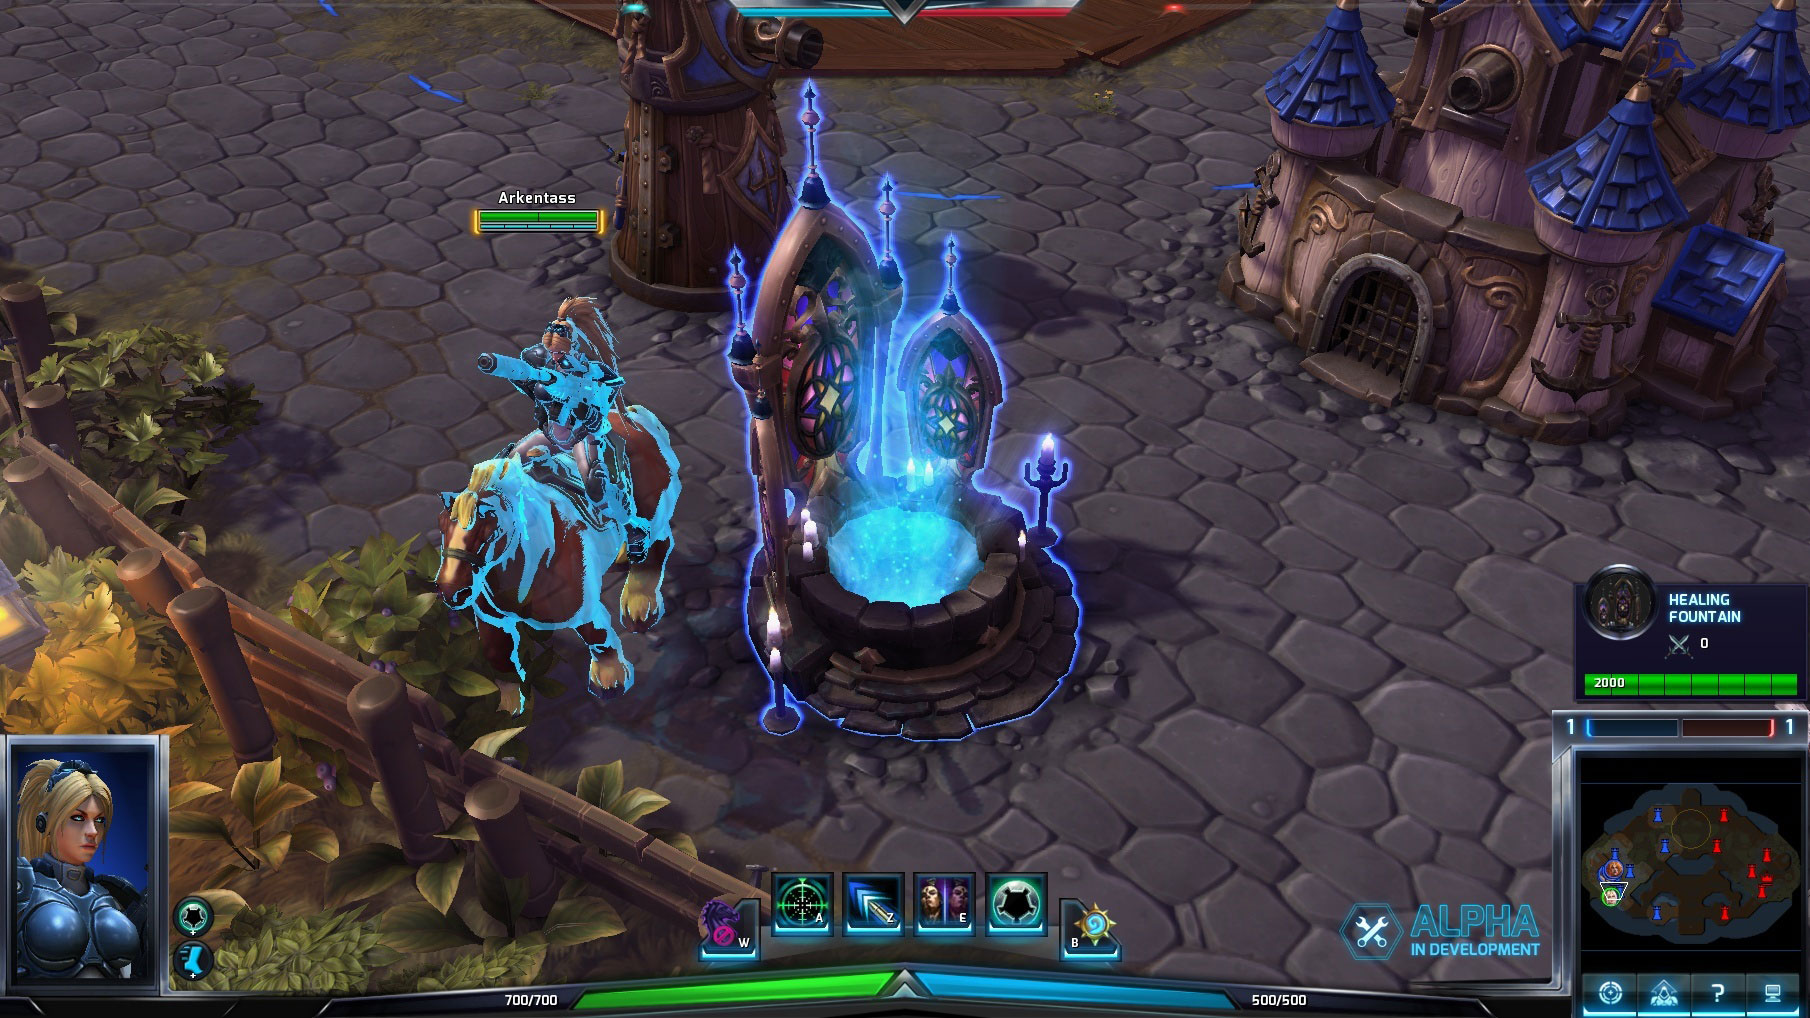 La fontaine dans Heroes of the Storm.